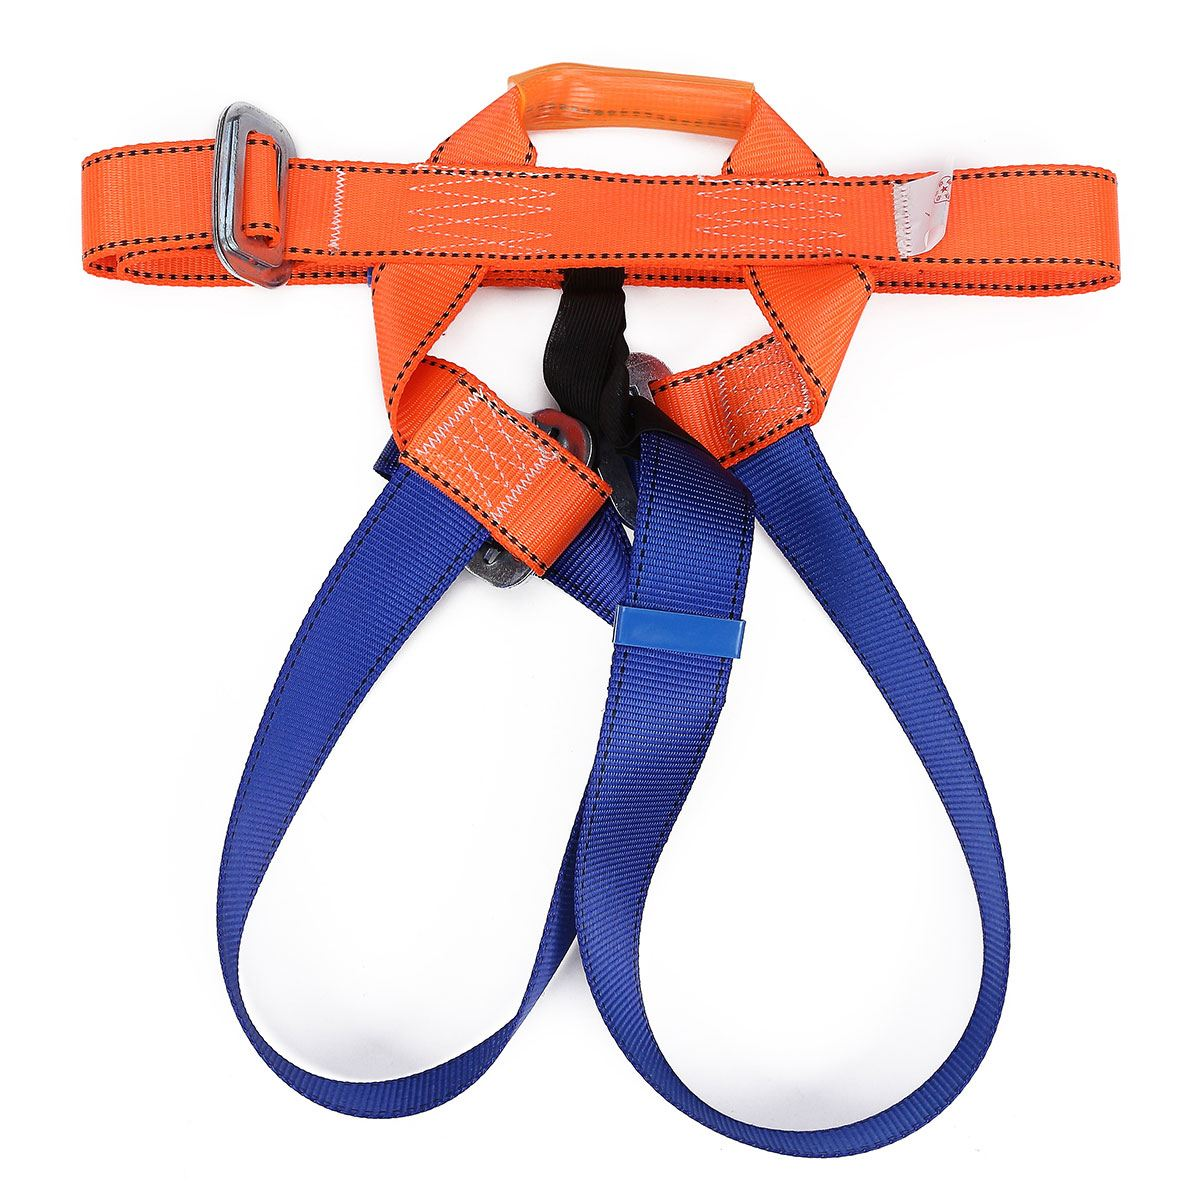 NEW Rappelling Rock Climbing Harness Seat Belts Sitting Bust Belts Half-body Safety belt equipment  Workplace Safety hot sale safety body harness outdoor mountaineering rock climbing harness protect waist seat belt outside multi tools